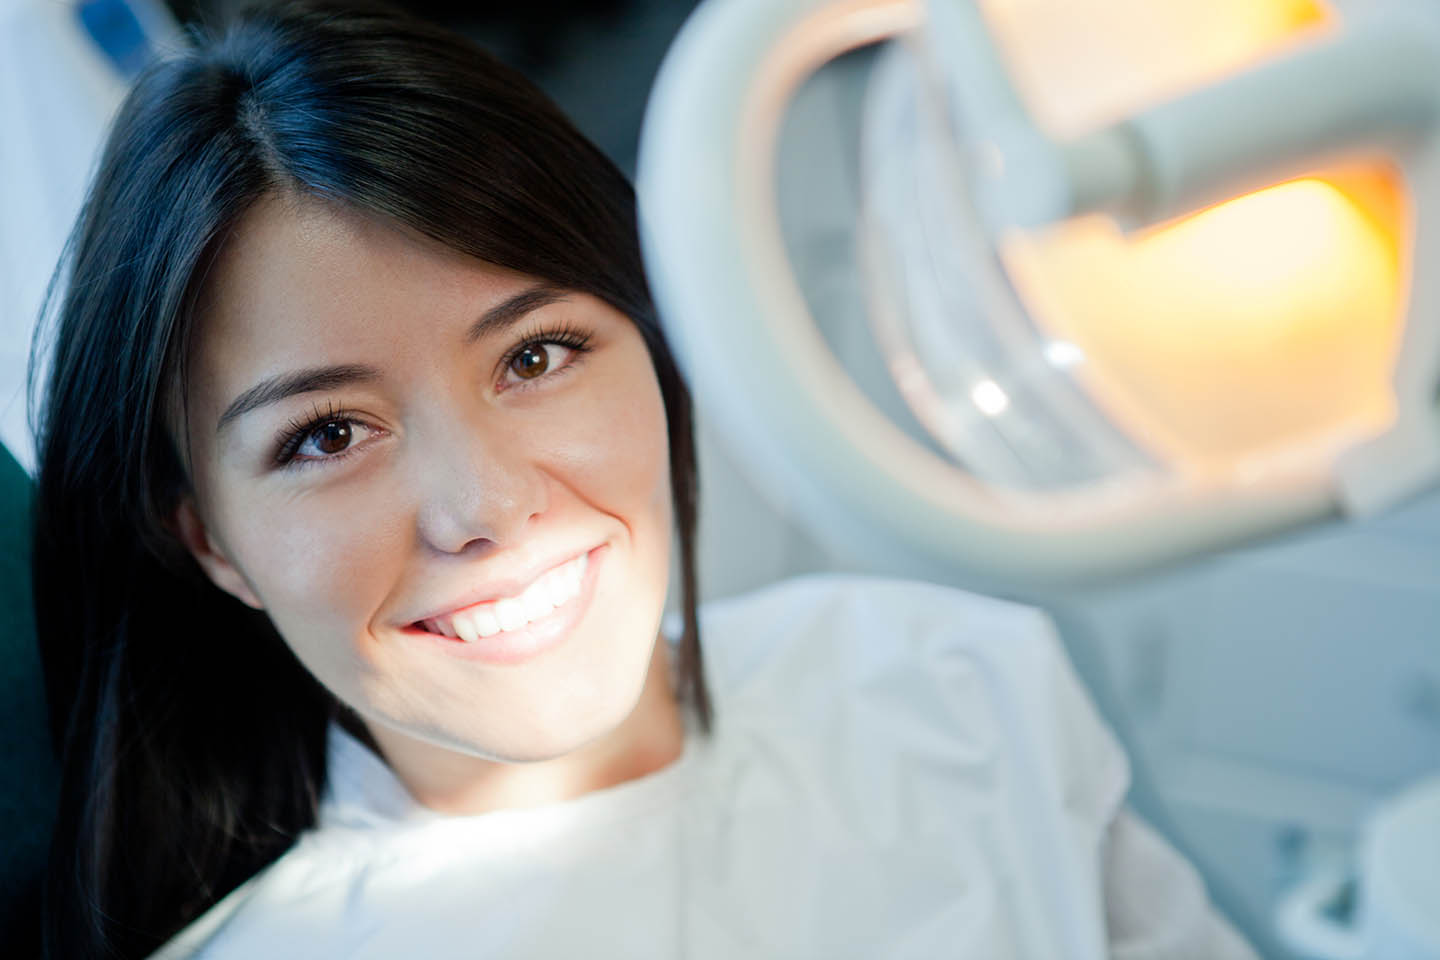 Patient smiling under a light to illuminate her teeth